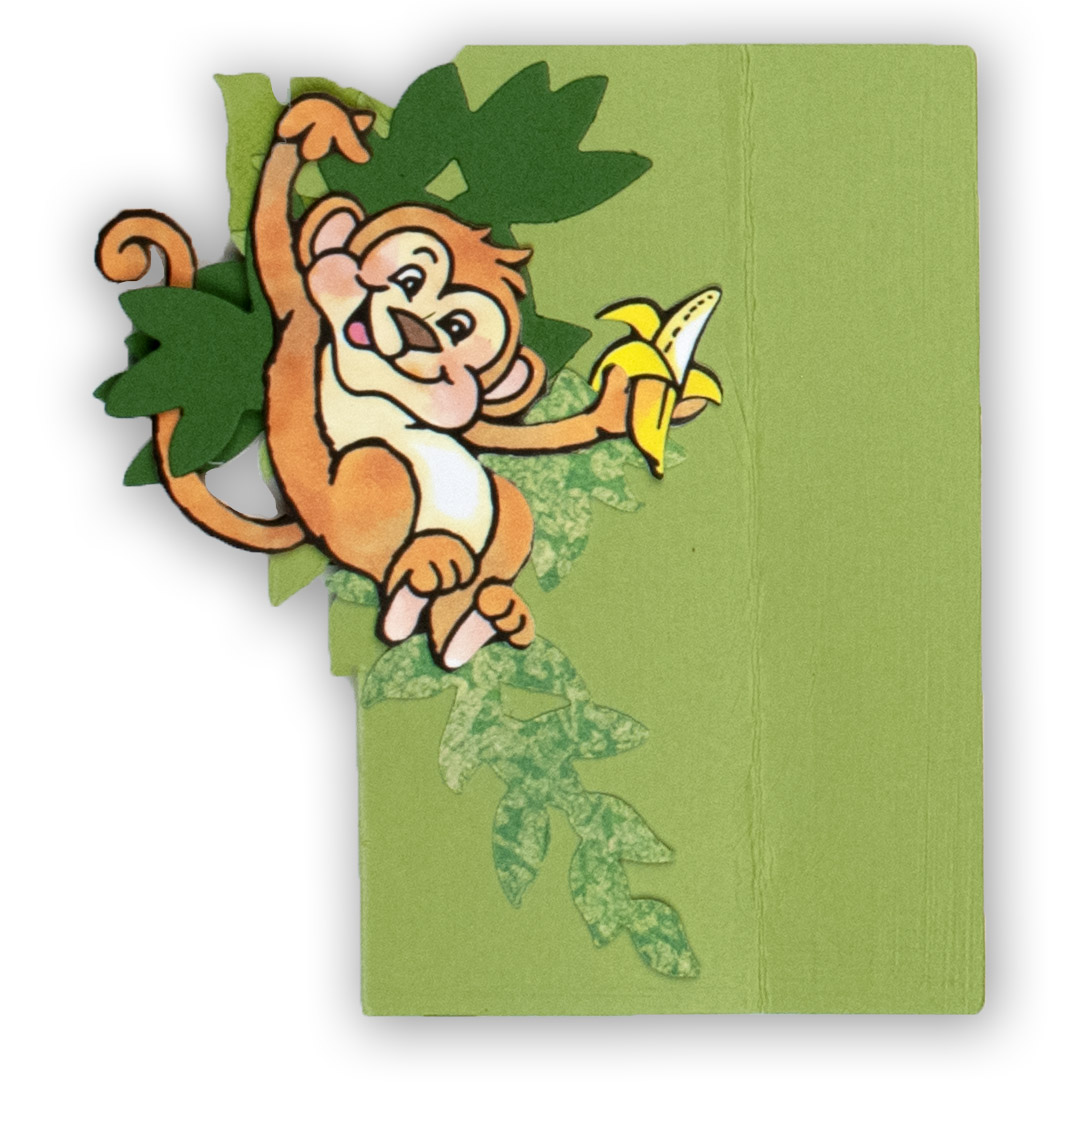 Monkey inside side panel